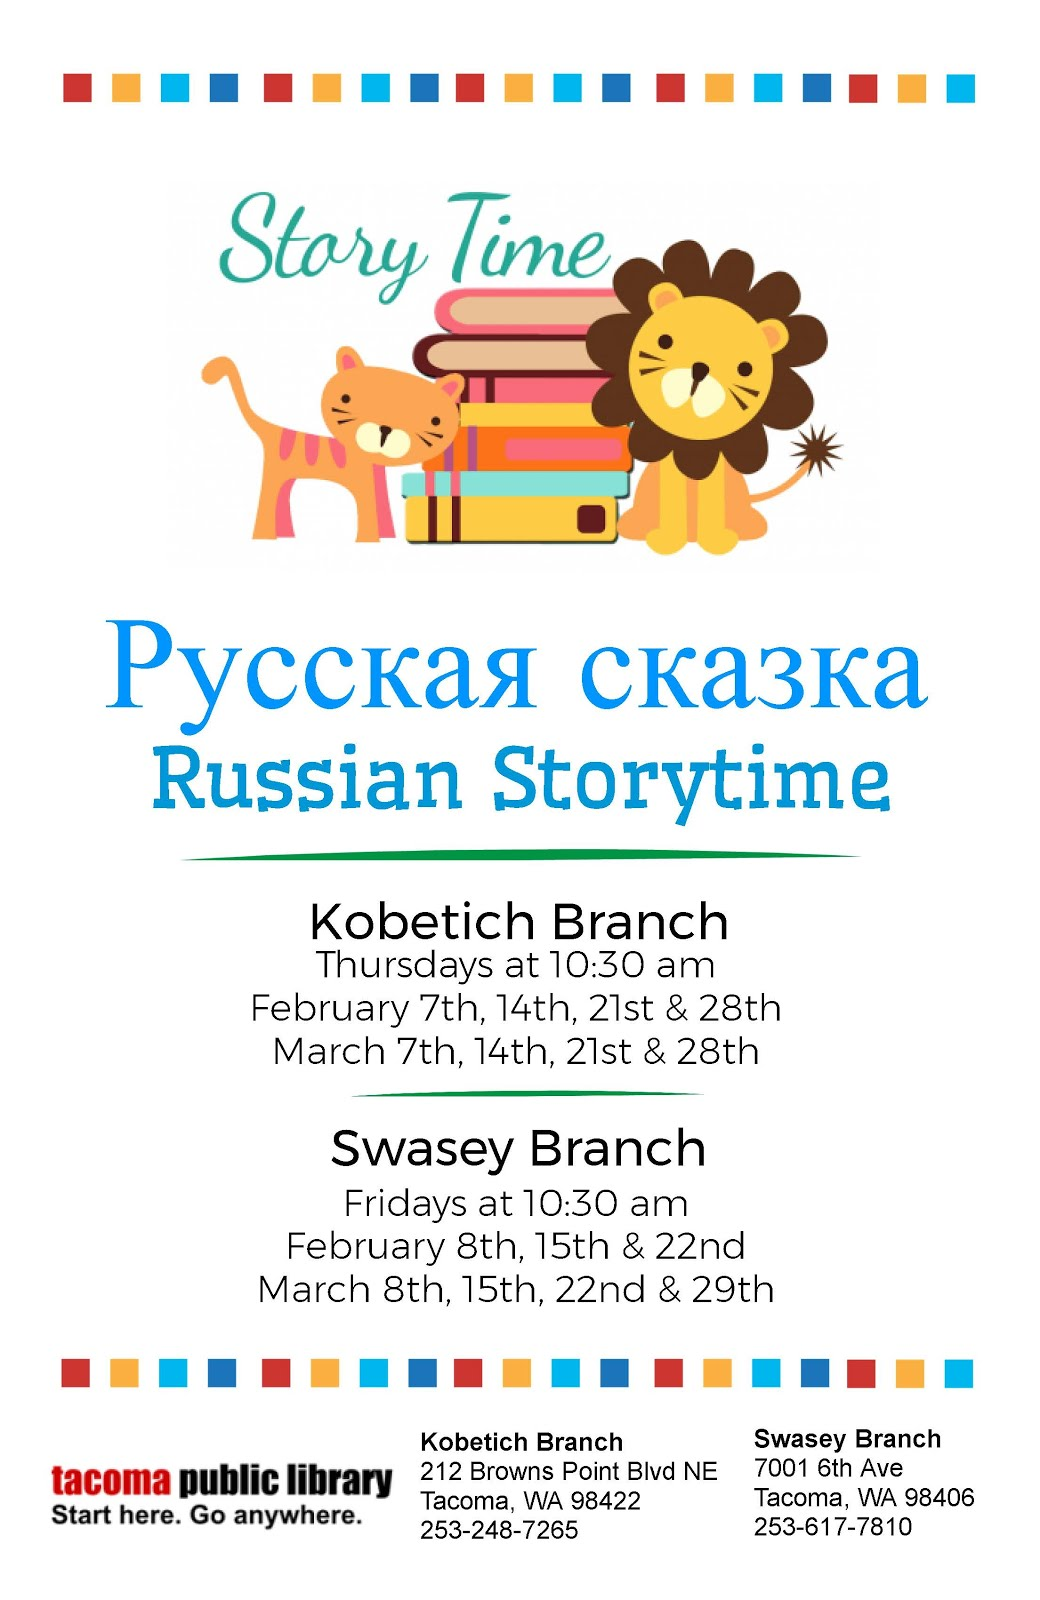 RUSSIAN STORY TIME 2019 IN TACOMA!